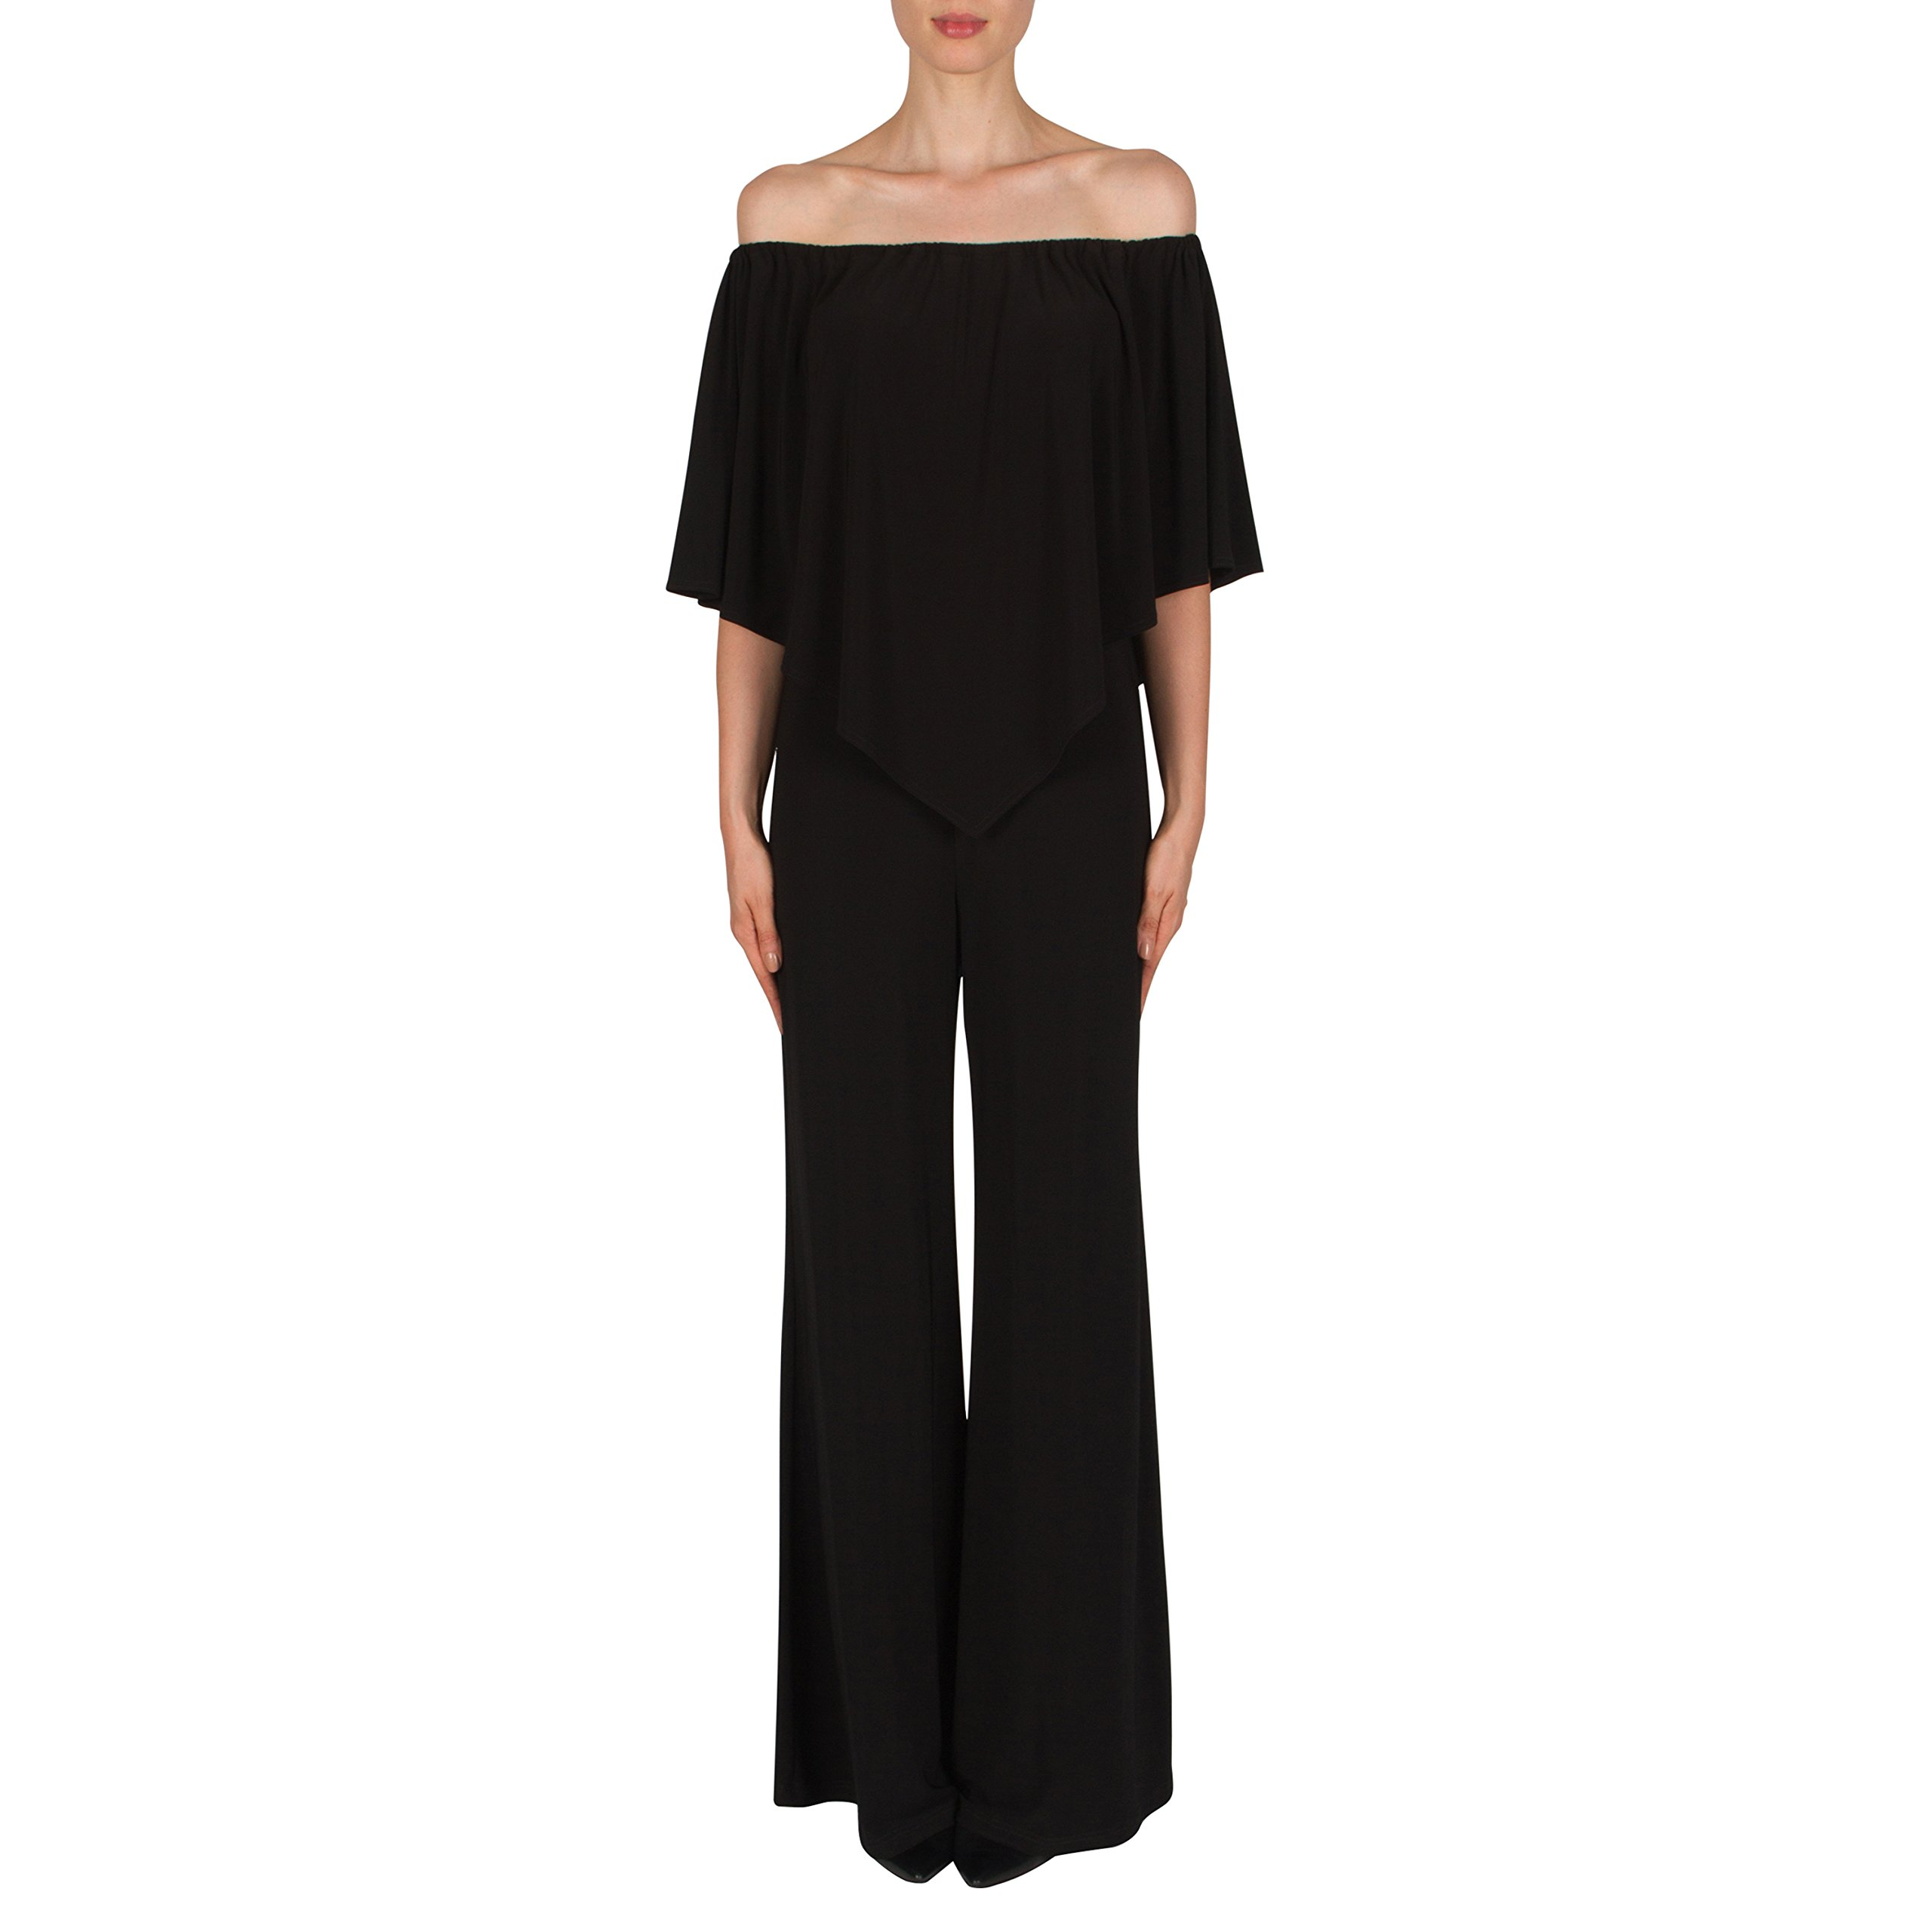 Joseph Ribkoff Black Poncho Top Jumpsuit Style 181041 - Size 8